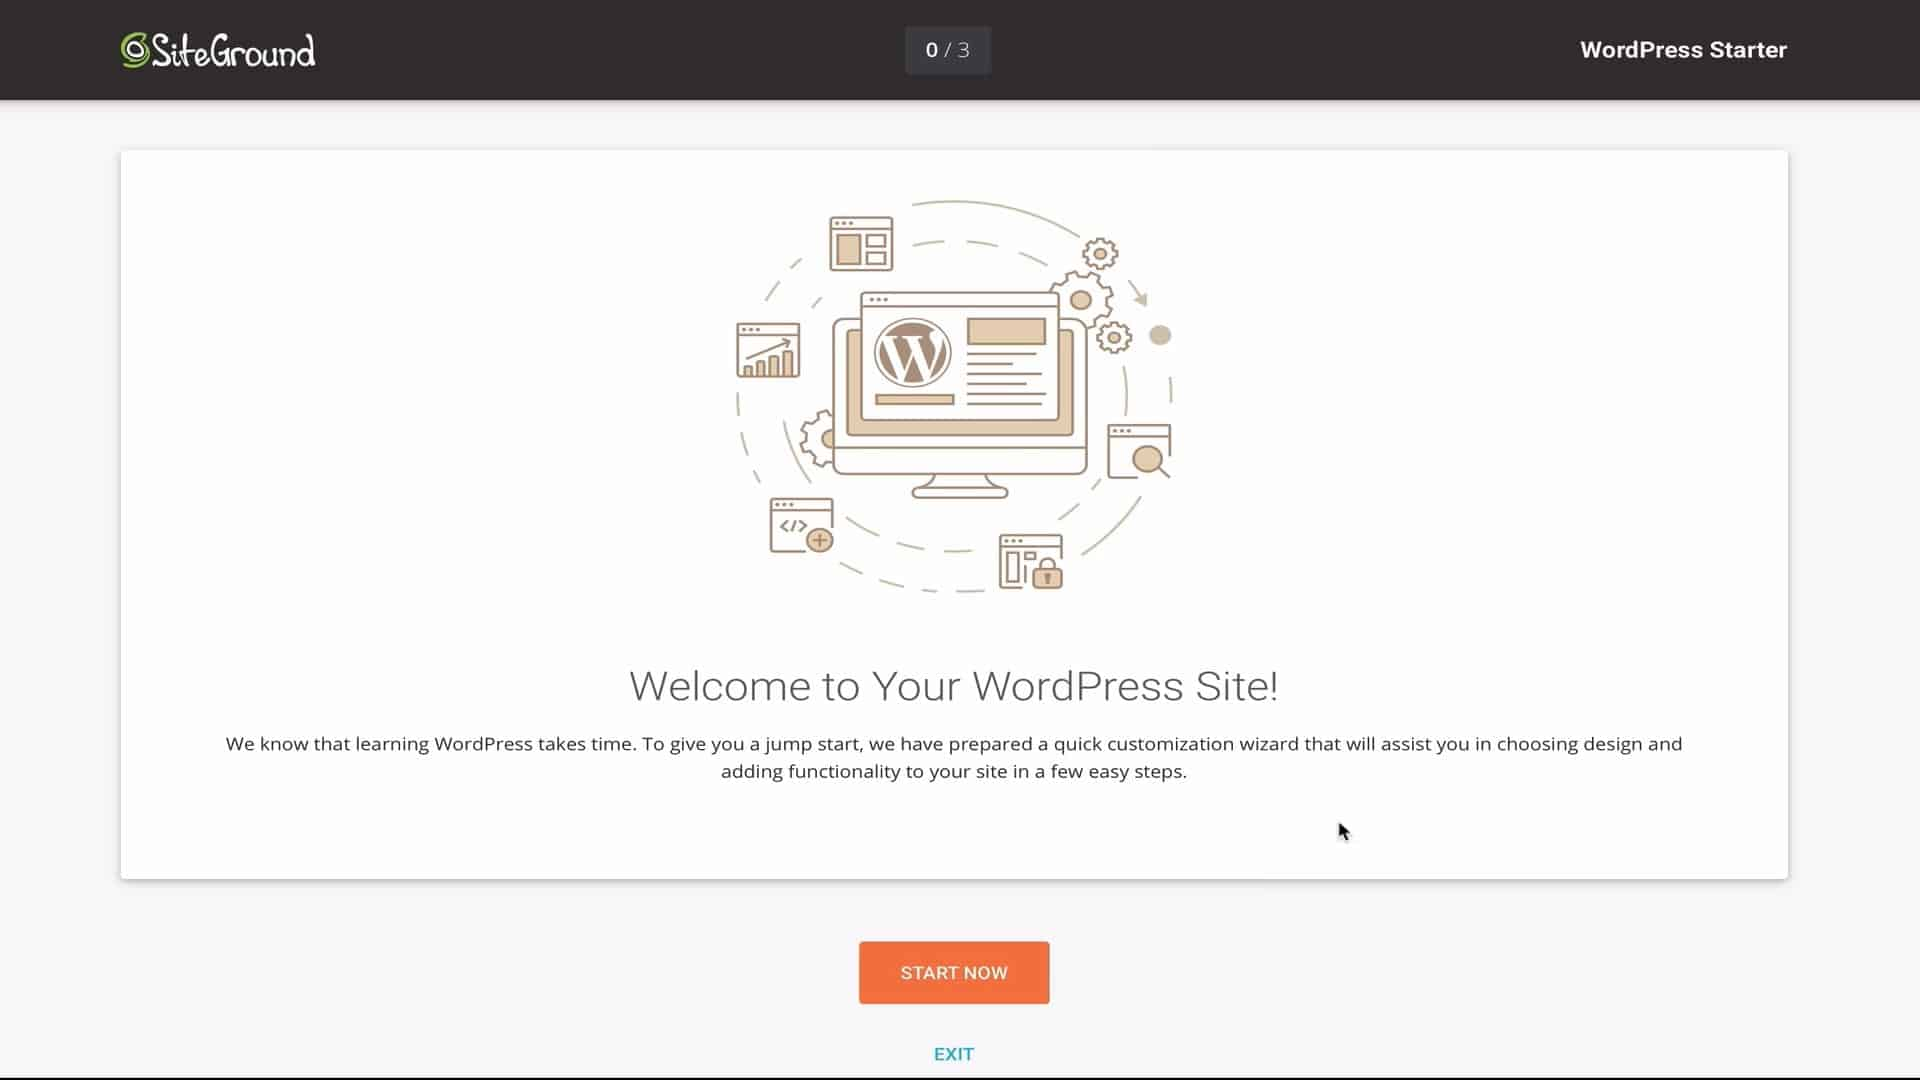 siteground-wp-starter-1-click-install